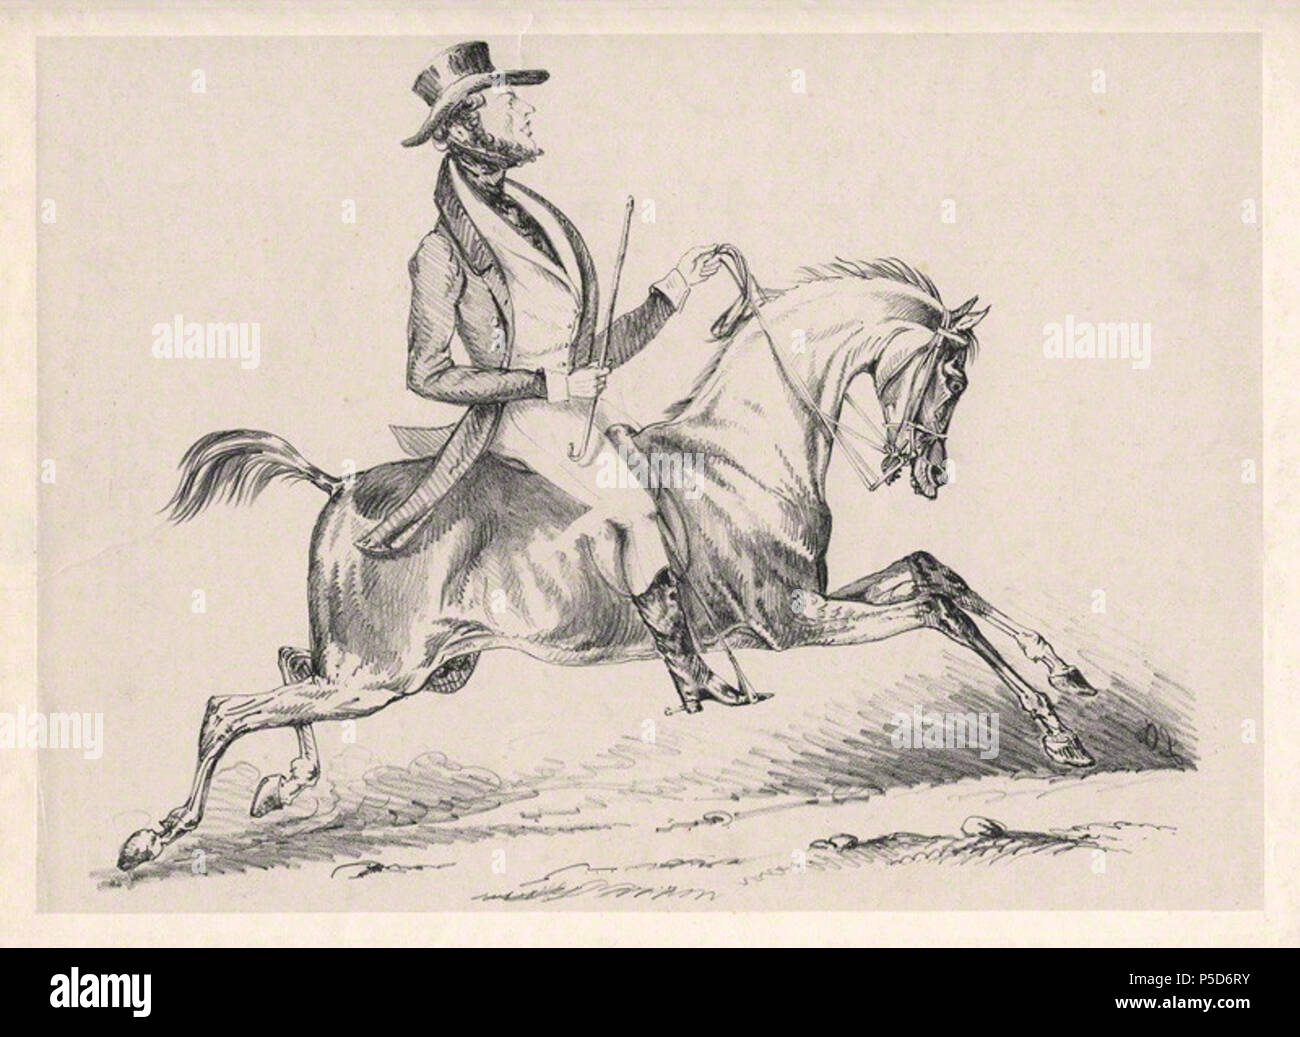 by L.O., lithograph, early 19th century 84 Alfred, Count D'Orsay by L.O. - Stock Image